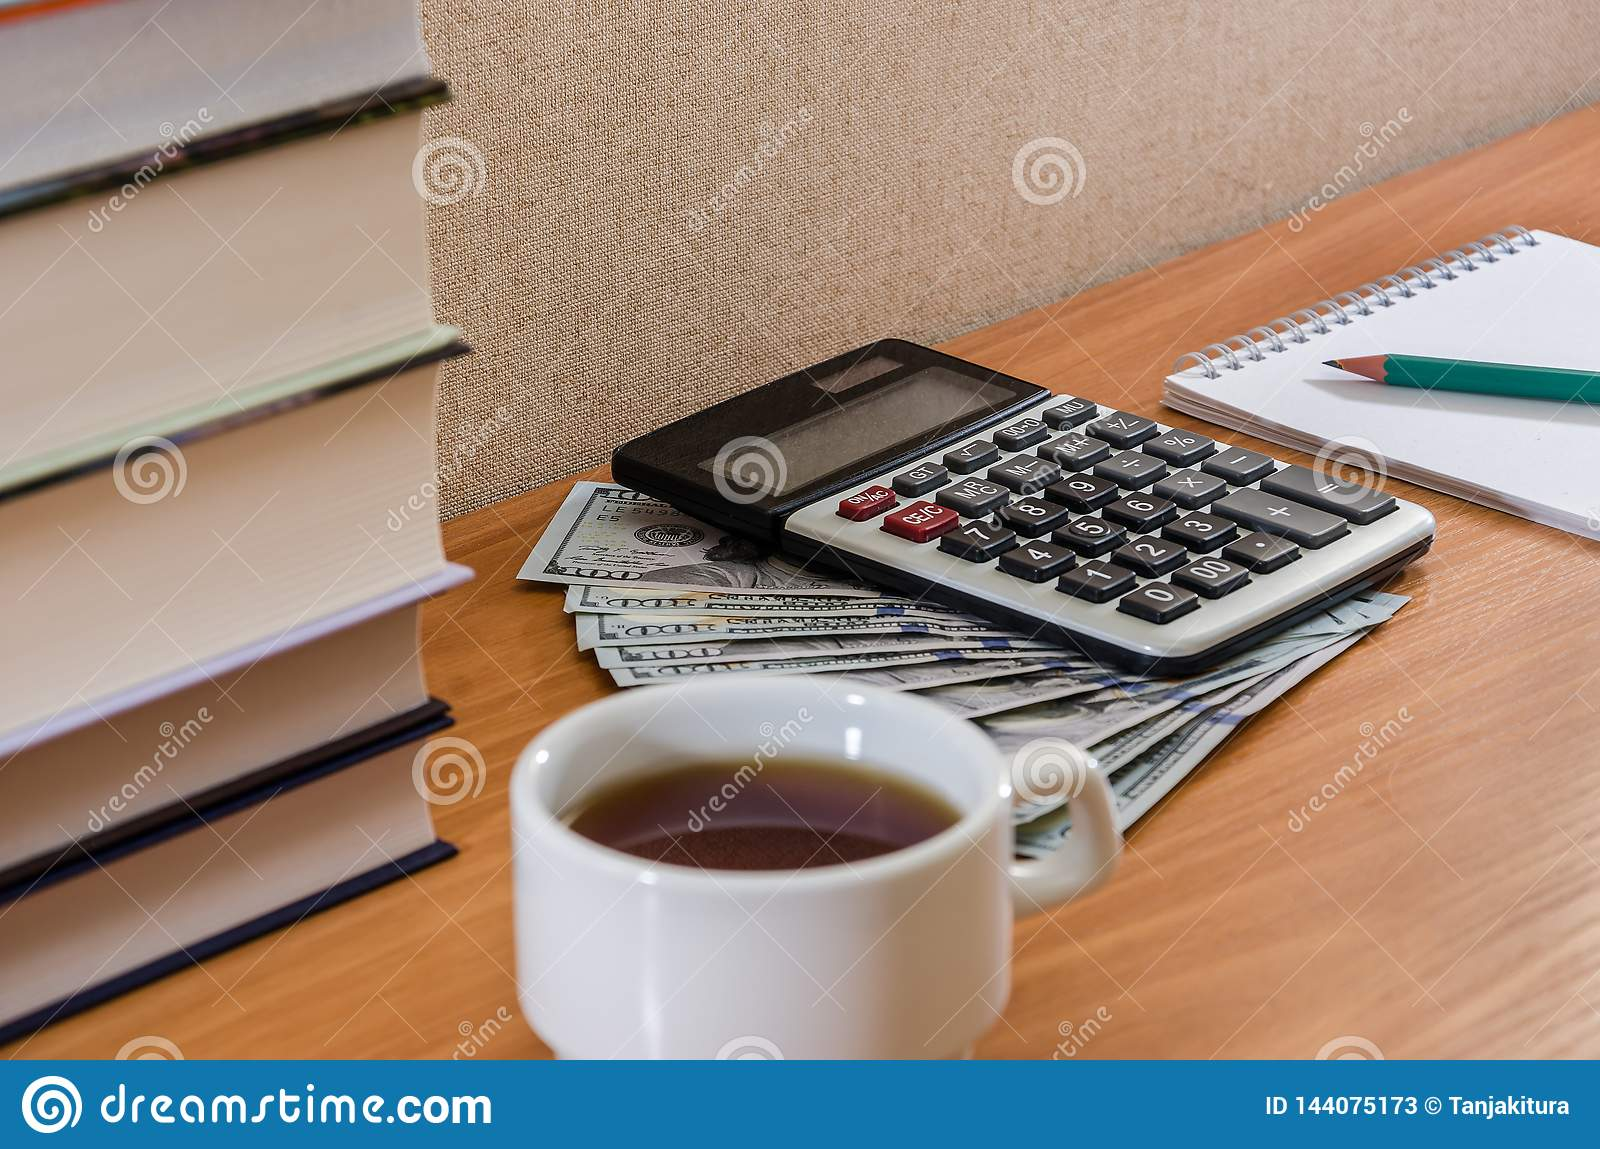 Calculator, dollars, notepad and books on the table